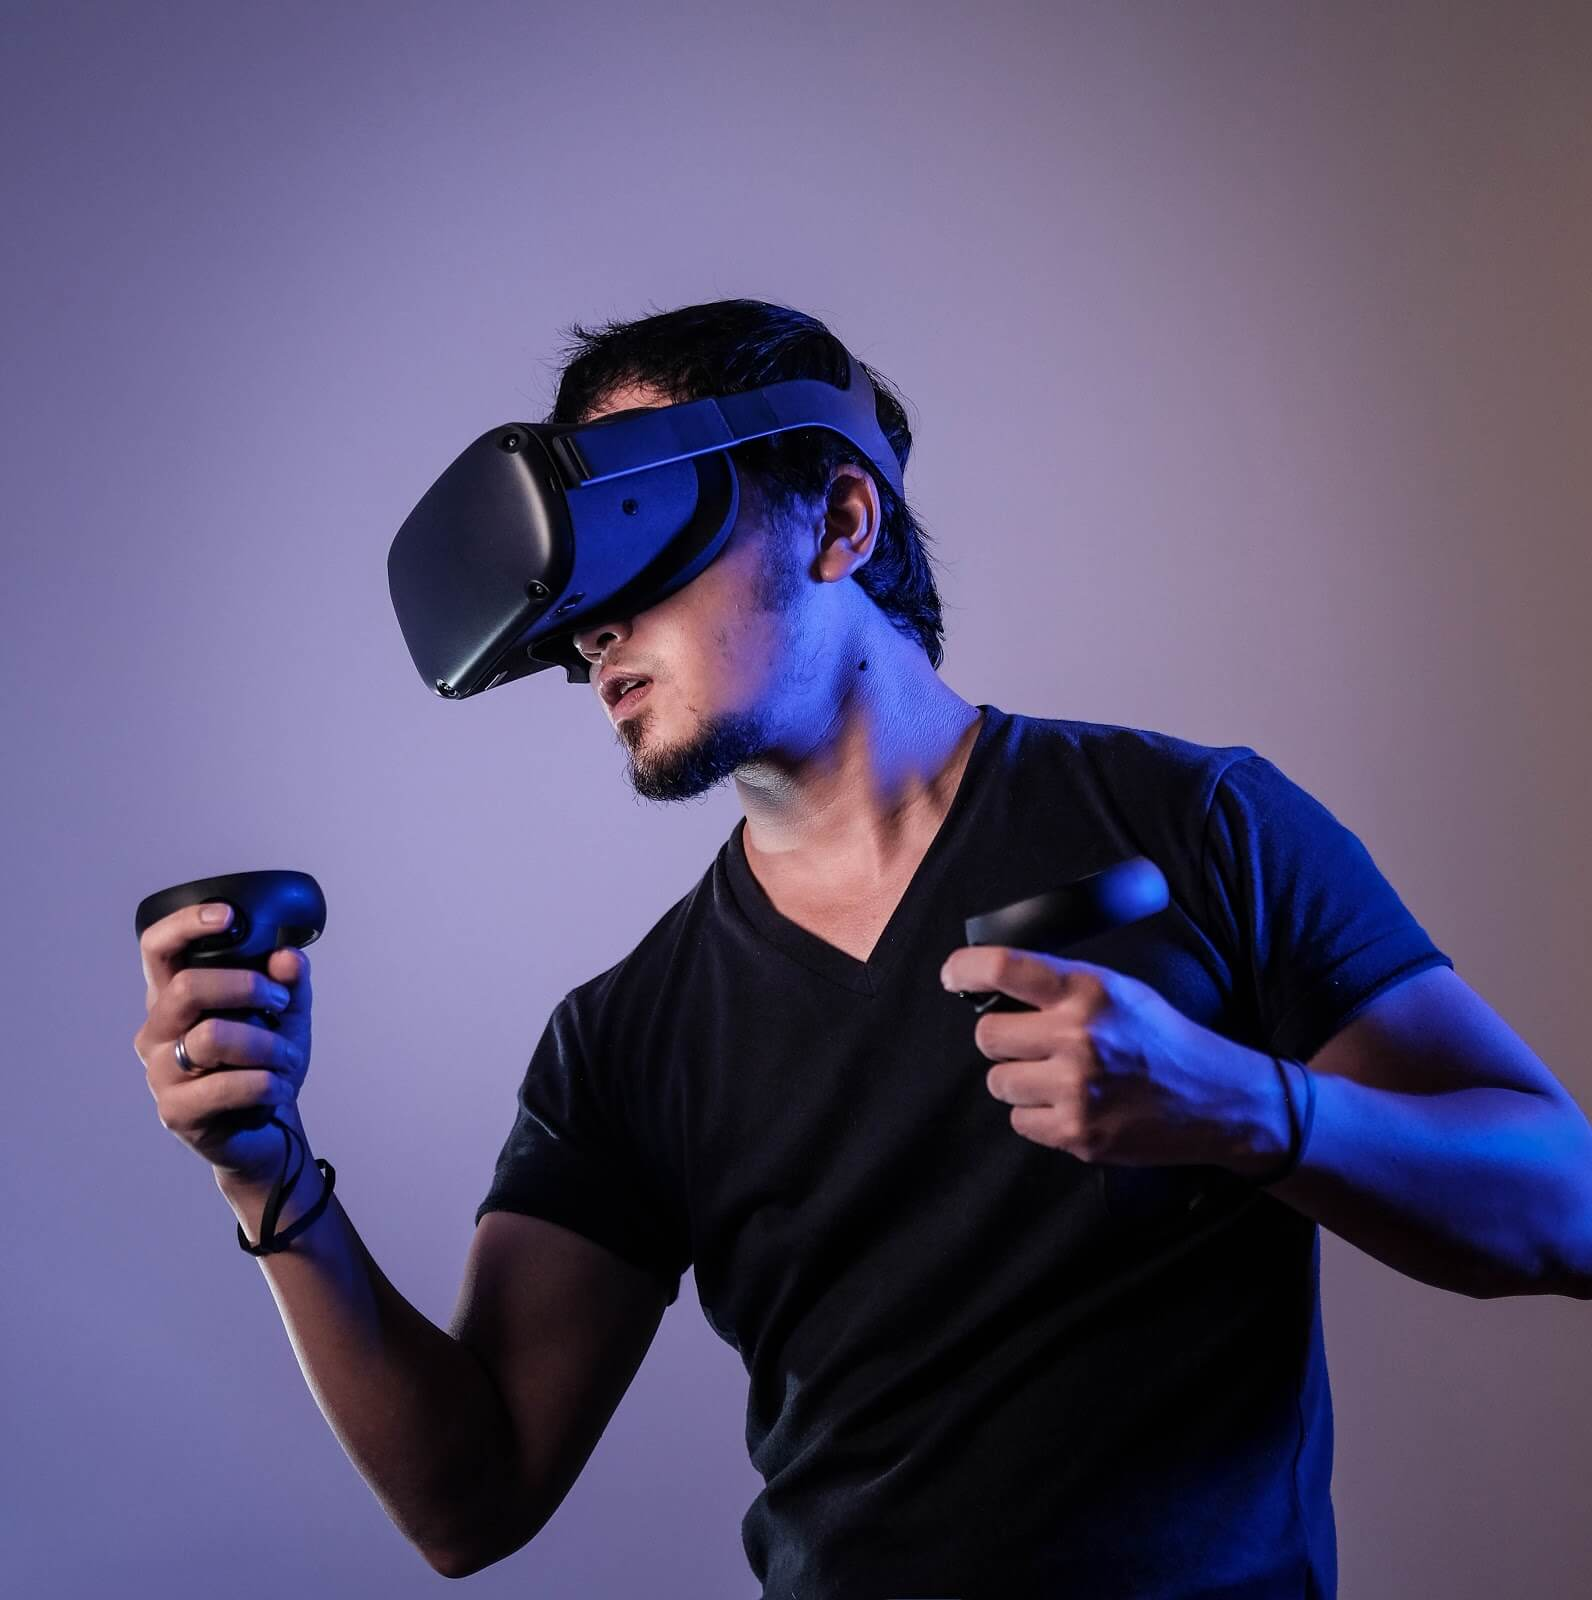 visualise products via AR or VR